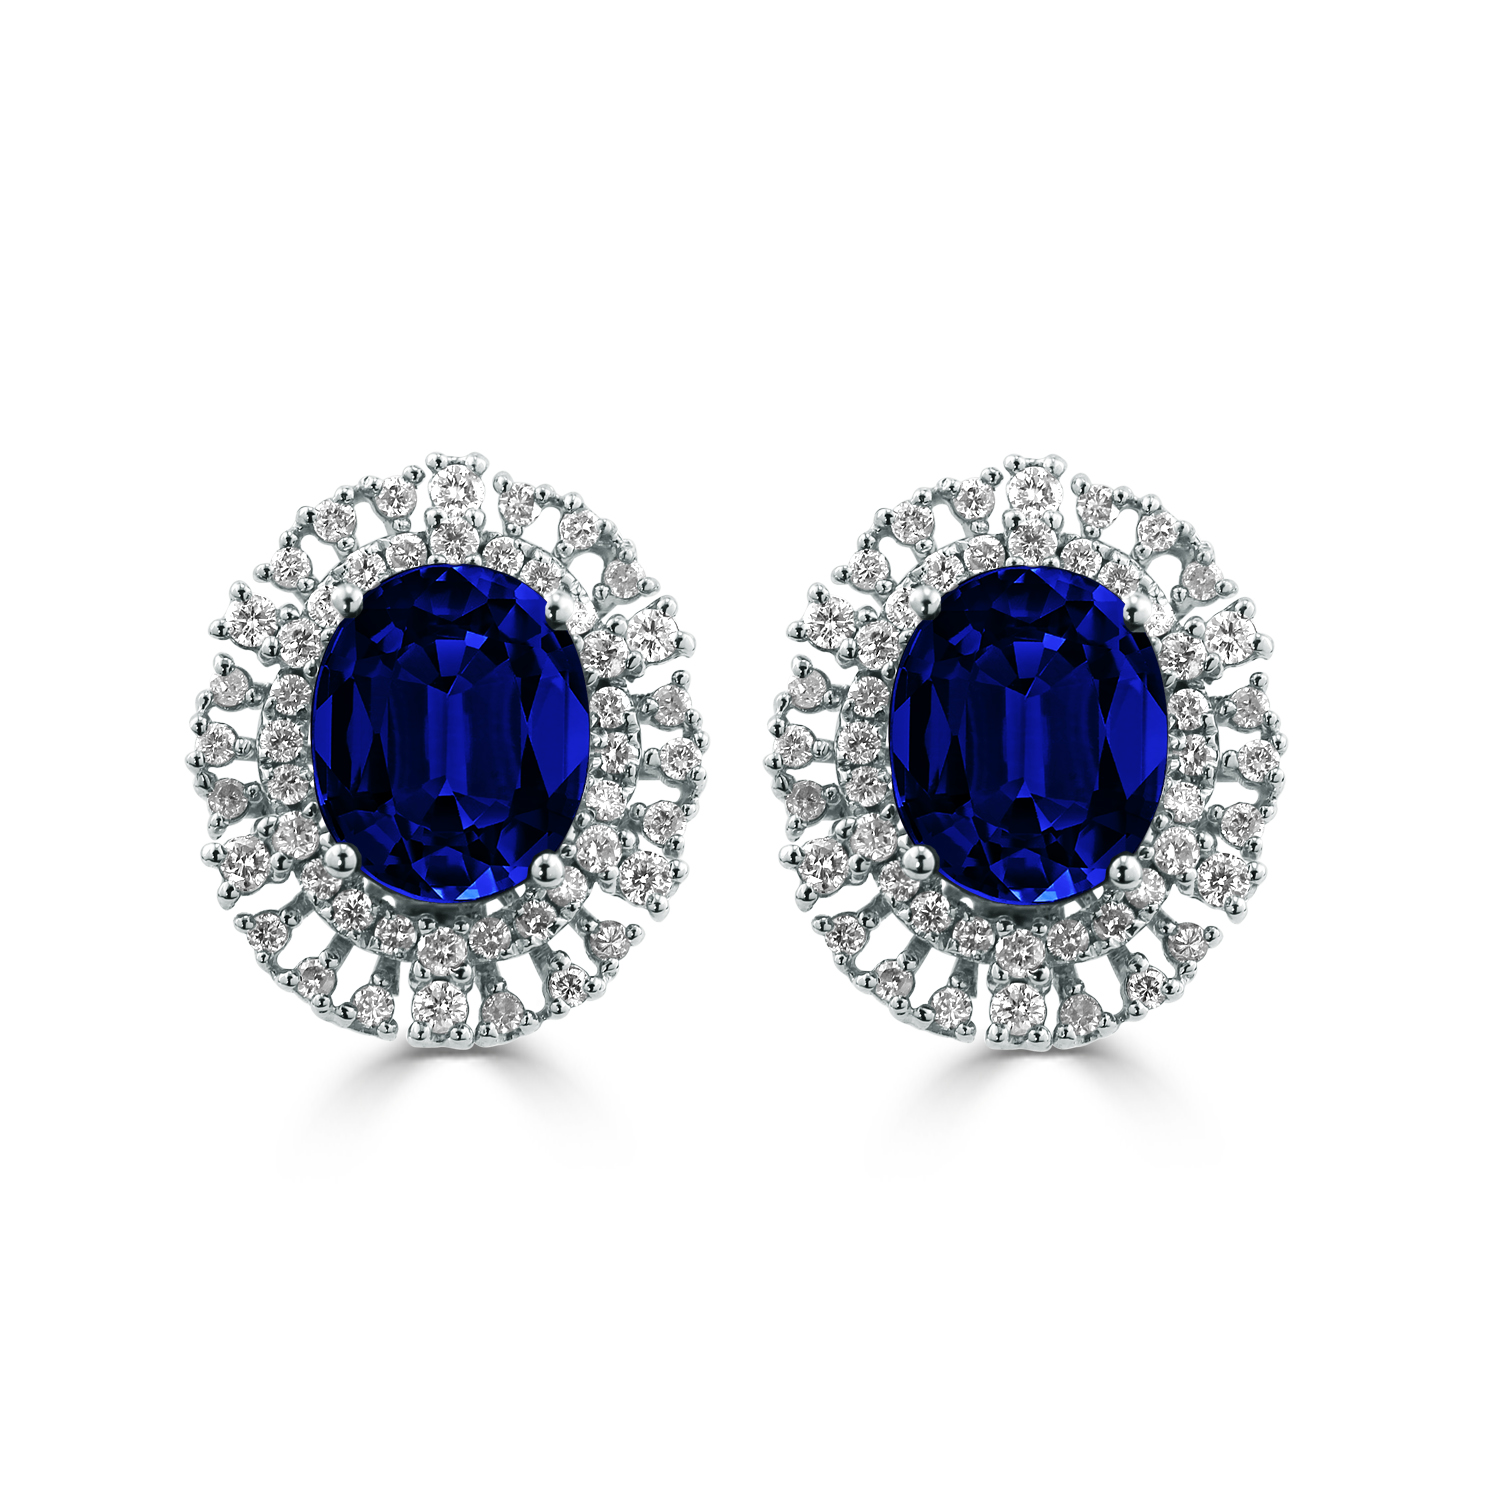 18K White Gold Halo Diamond Earrings with 7 5/8 cttw Oval Blue Sapphire and 1.08 cttw Diamonds IGI Certified